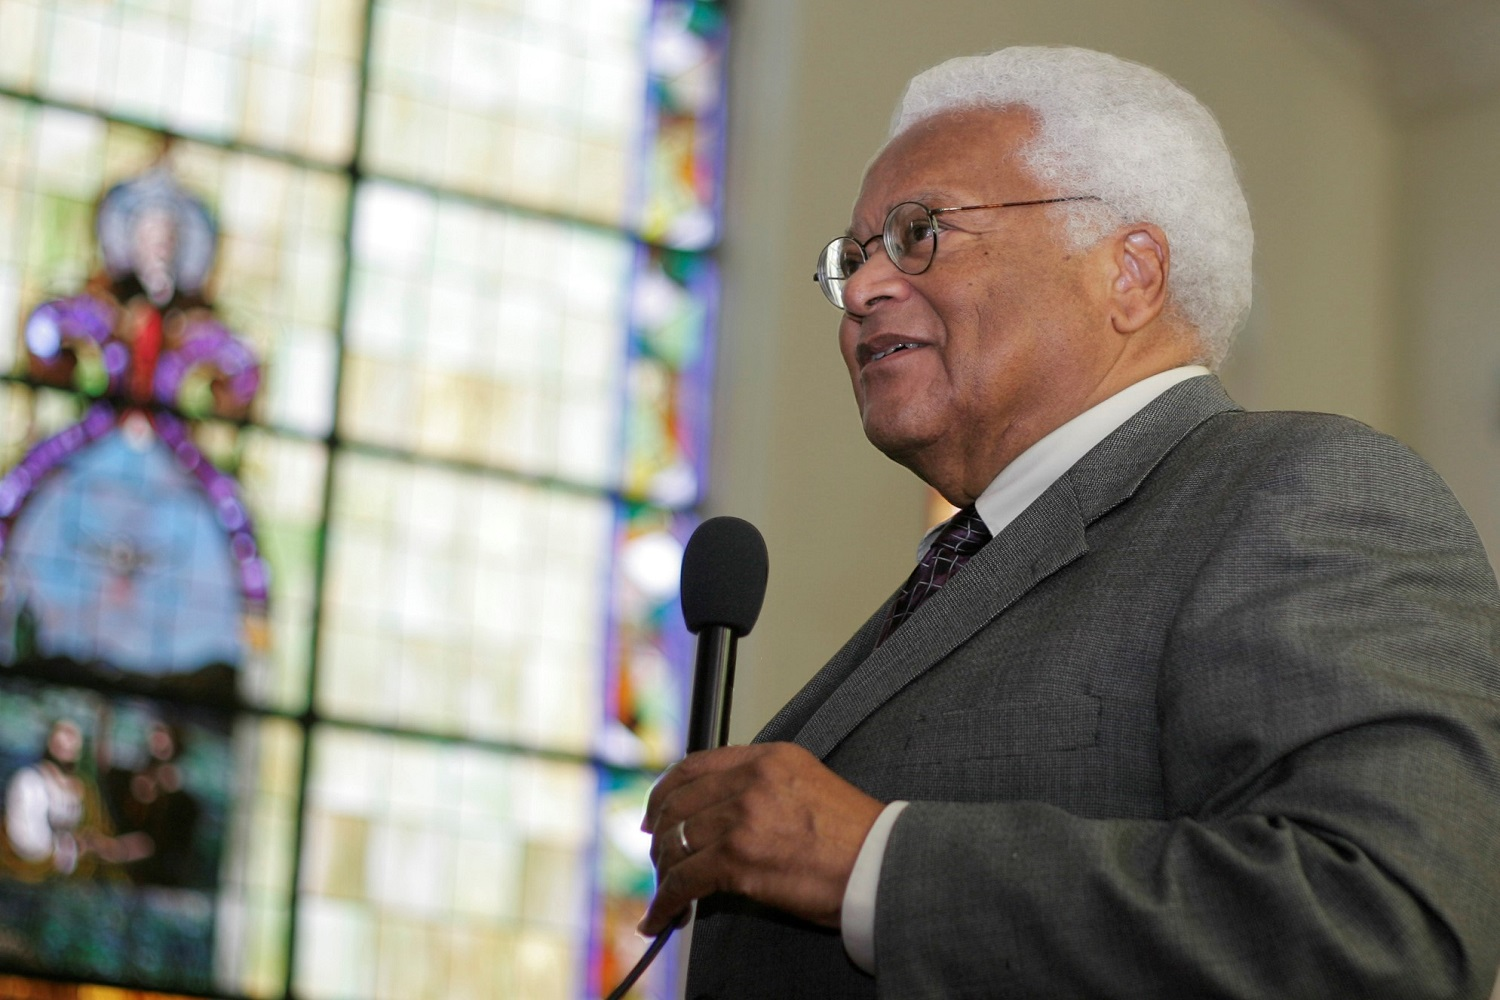 The Rev. James Lawson speaks about nonviolence at First Baptist Church in Montgomery, Ala., the site of a 1961 confrontation between Freedom Riders and an angry mob. The visit to the church was part of the March 6-8 congressional civil rights pilgrimage to Alabama. Lawson was one of several United Methodist leaders participating in trip sponsored by the Faith and Politics Institute. A UMNS photo by Kathy L. Gilbert